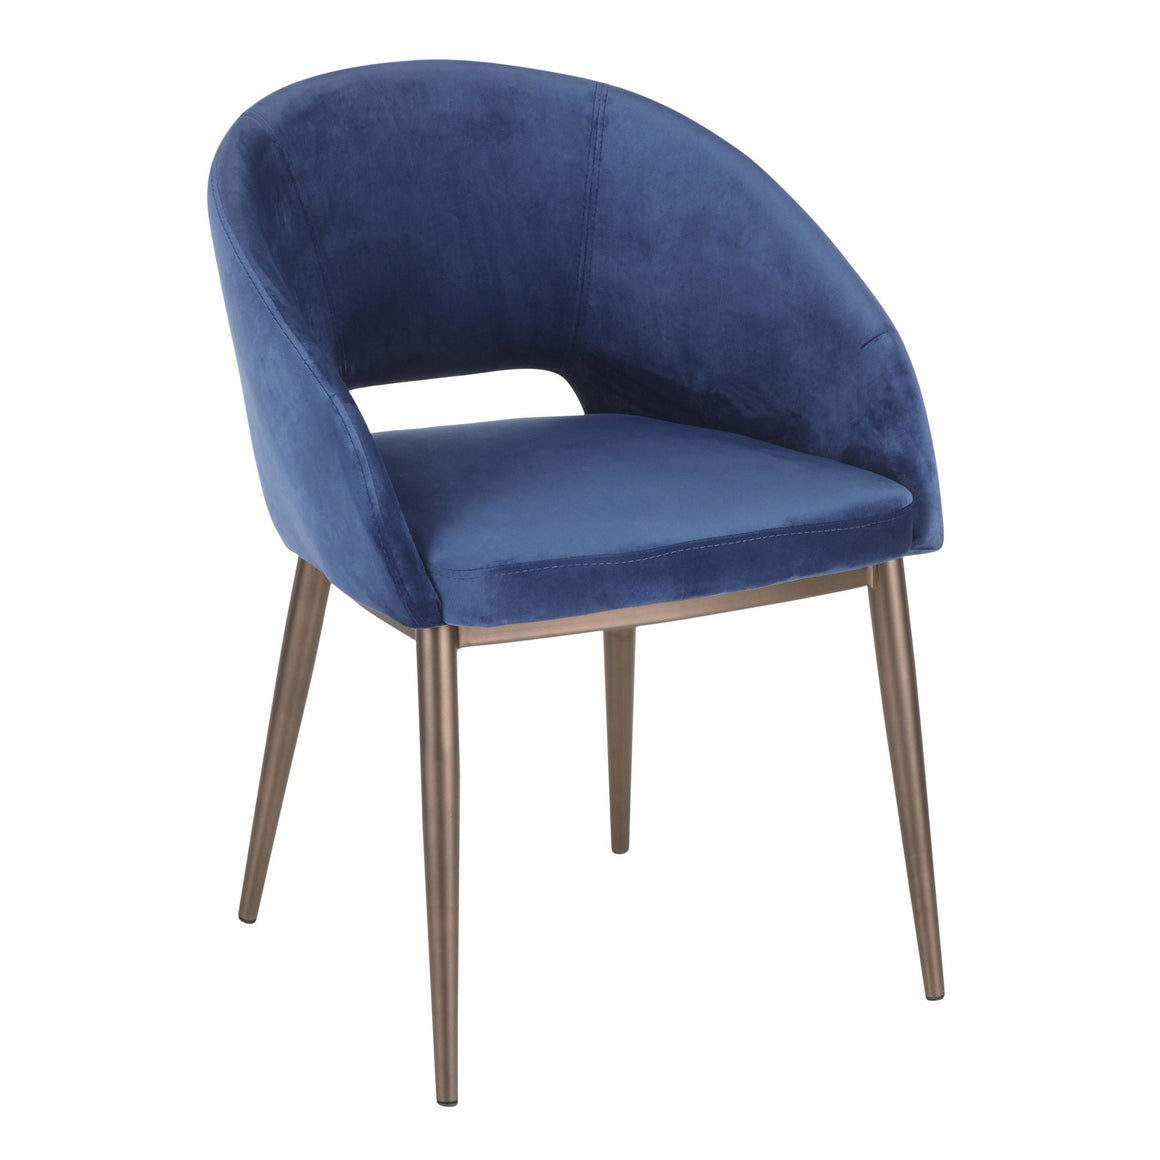 Renee Contemporary Chair in Copper Metal Legs with Blue Velvet by LumiSource